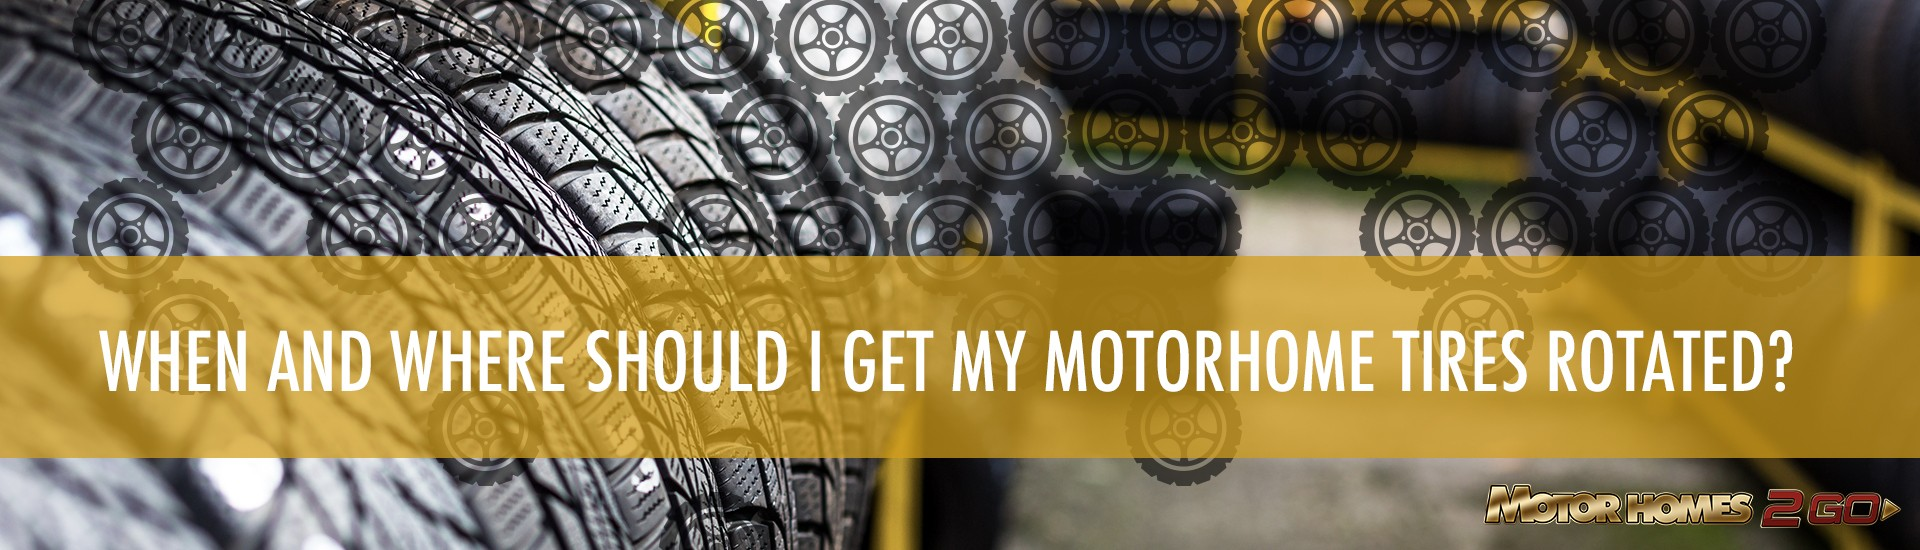 when and where should i get my motorhome tires rotated